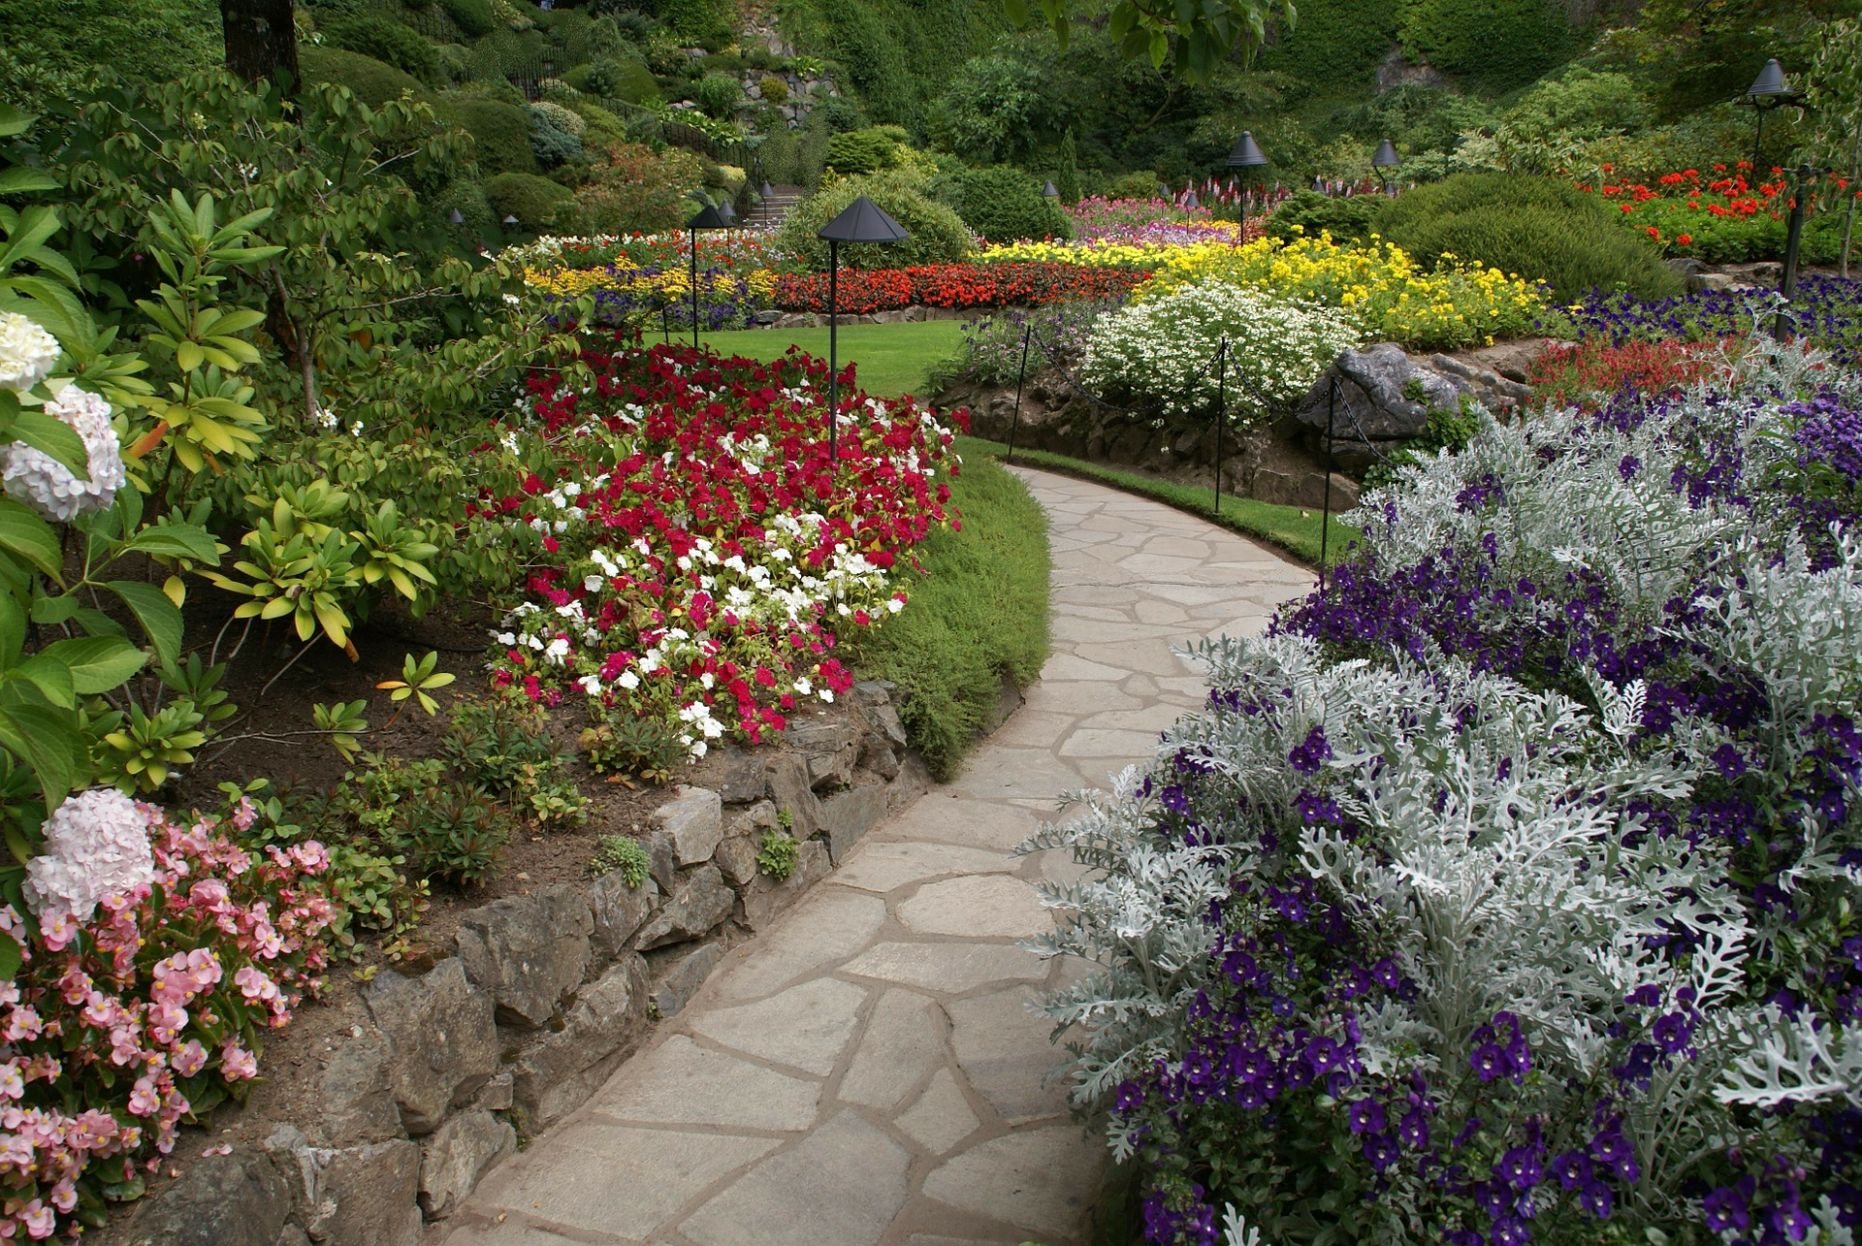 The Butchart Gardens is a Top Attraction in Victoria, BC Canada